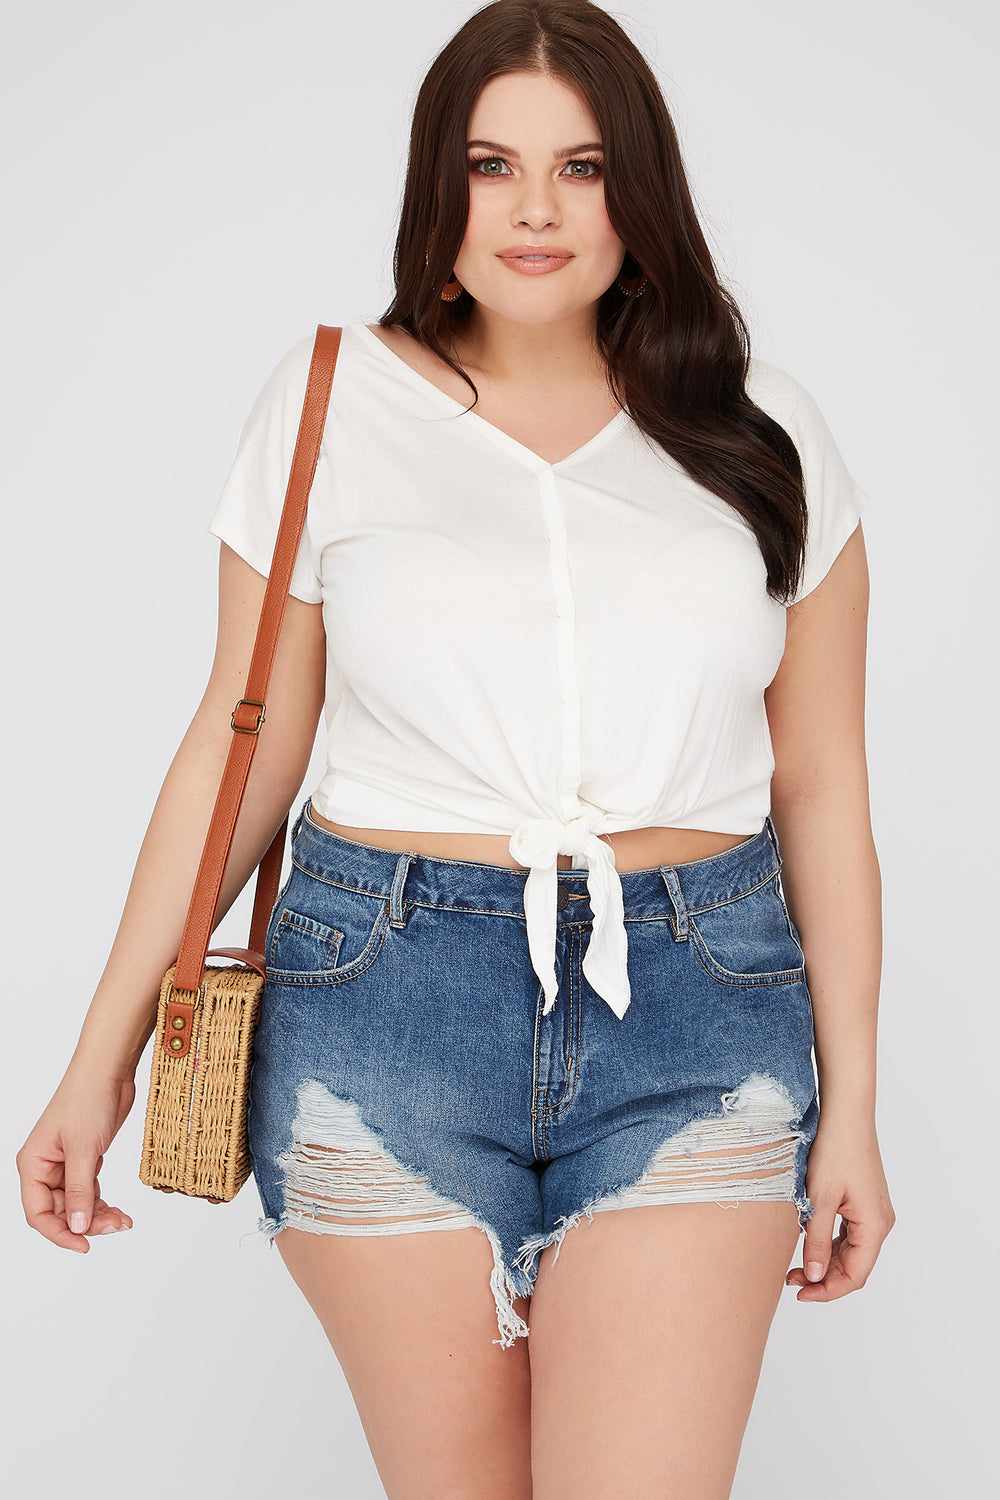 Refuge Plus Size Super High-Rise Distressed Girlfriend Denim Short Dark Blue